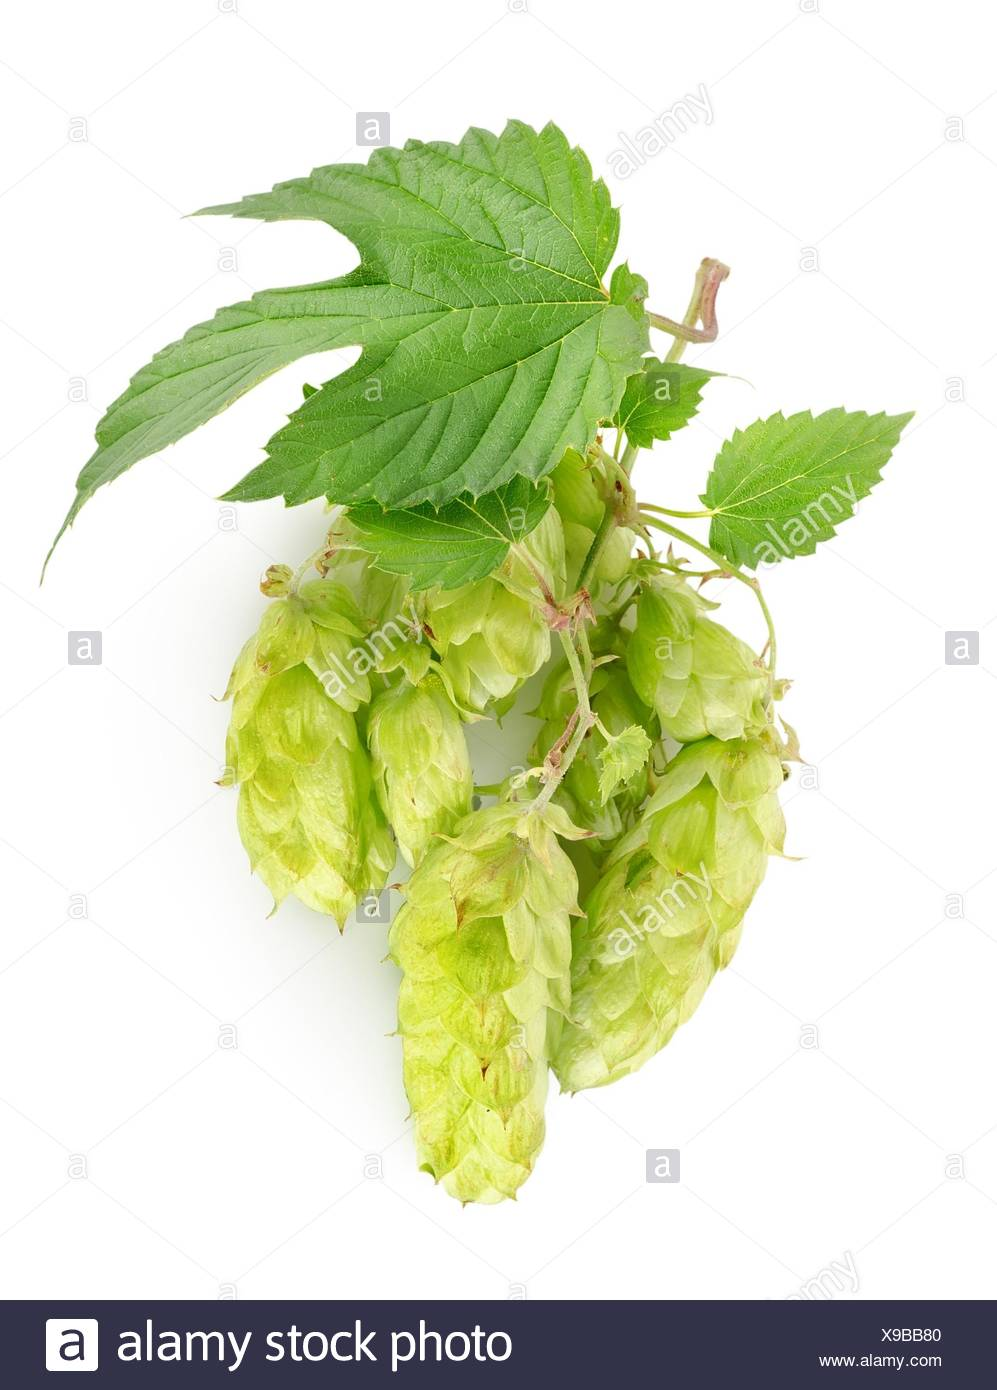 Branch of hops isolated on a white background. - Stock Image